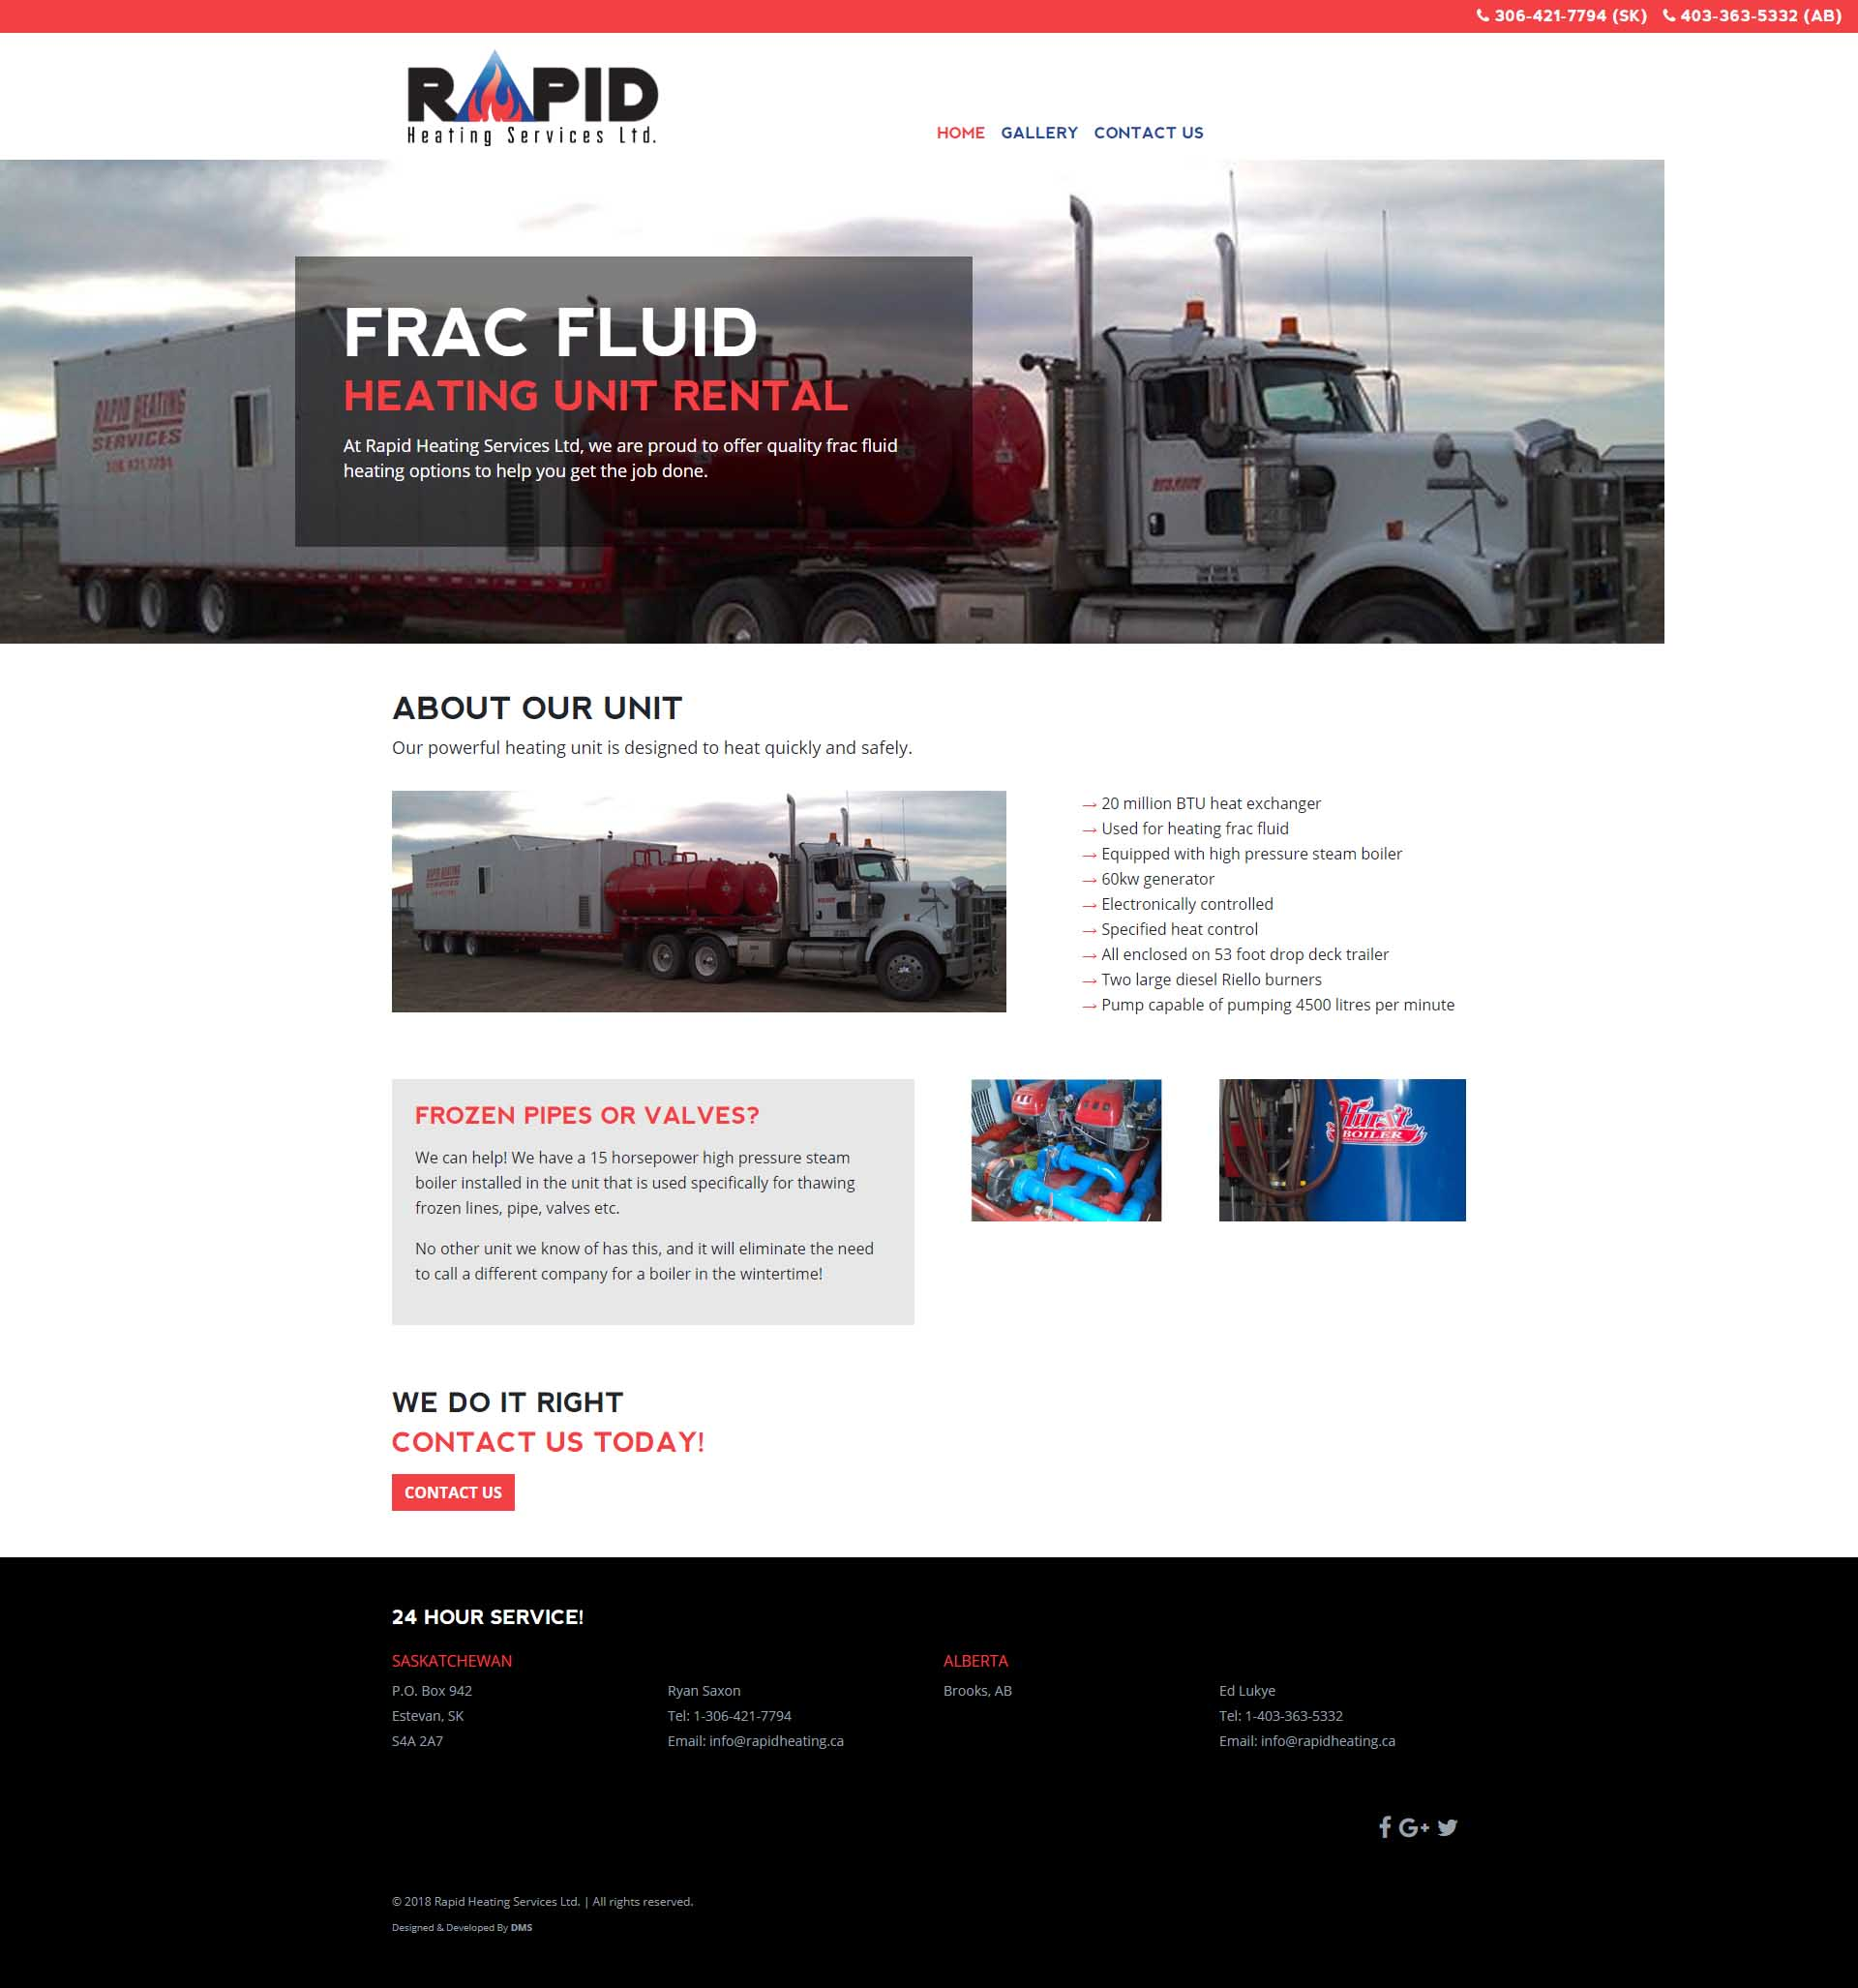 DMS Services Website Portfolio - Rapid Heating Services Ltd.